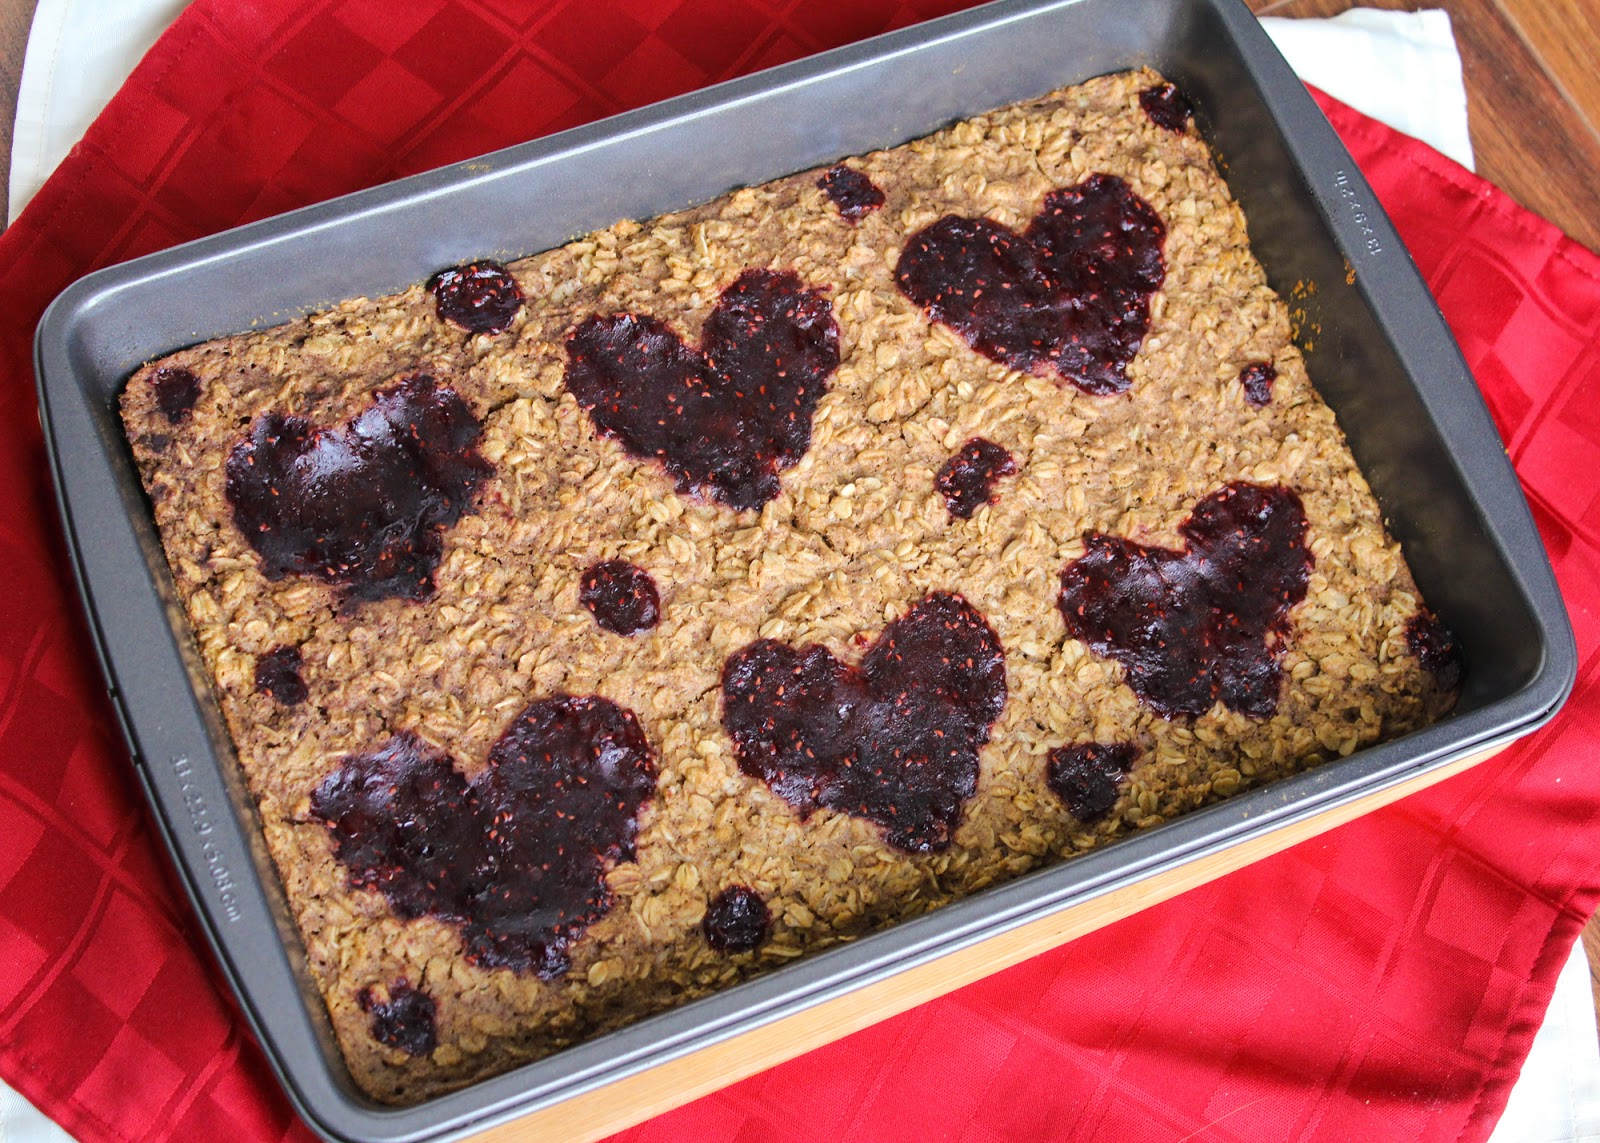 Peanut butter and jelly baked oatmeal for Valentine's Day